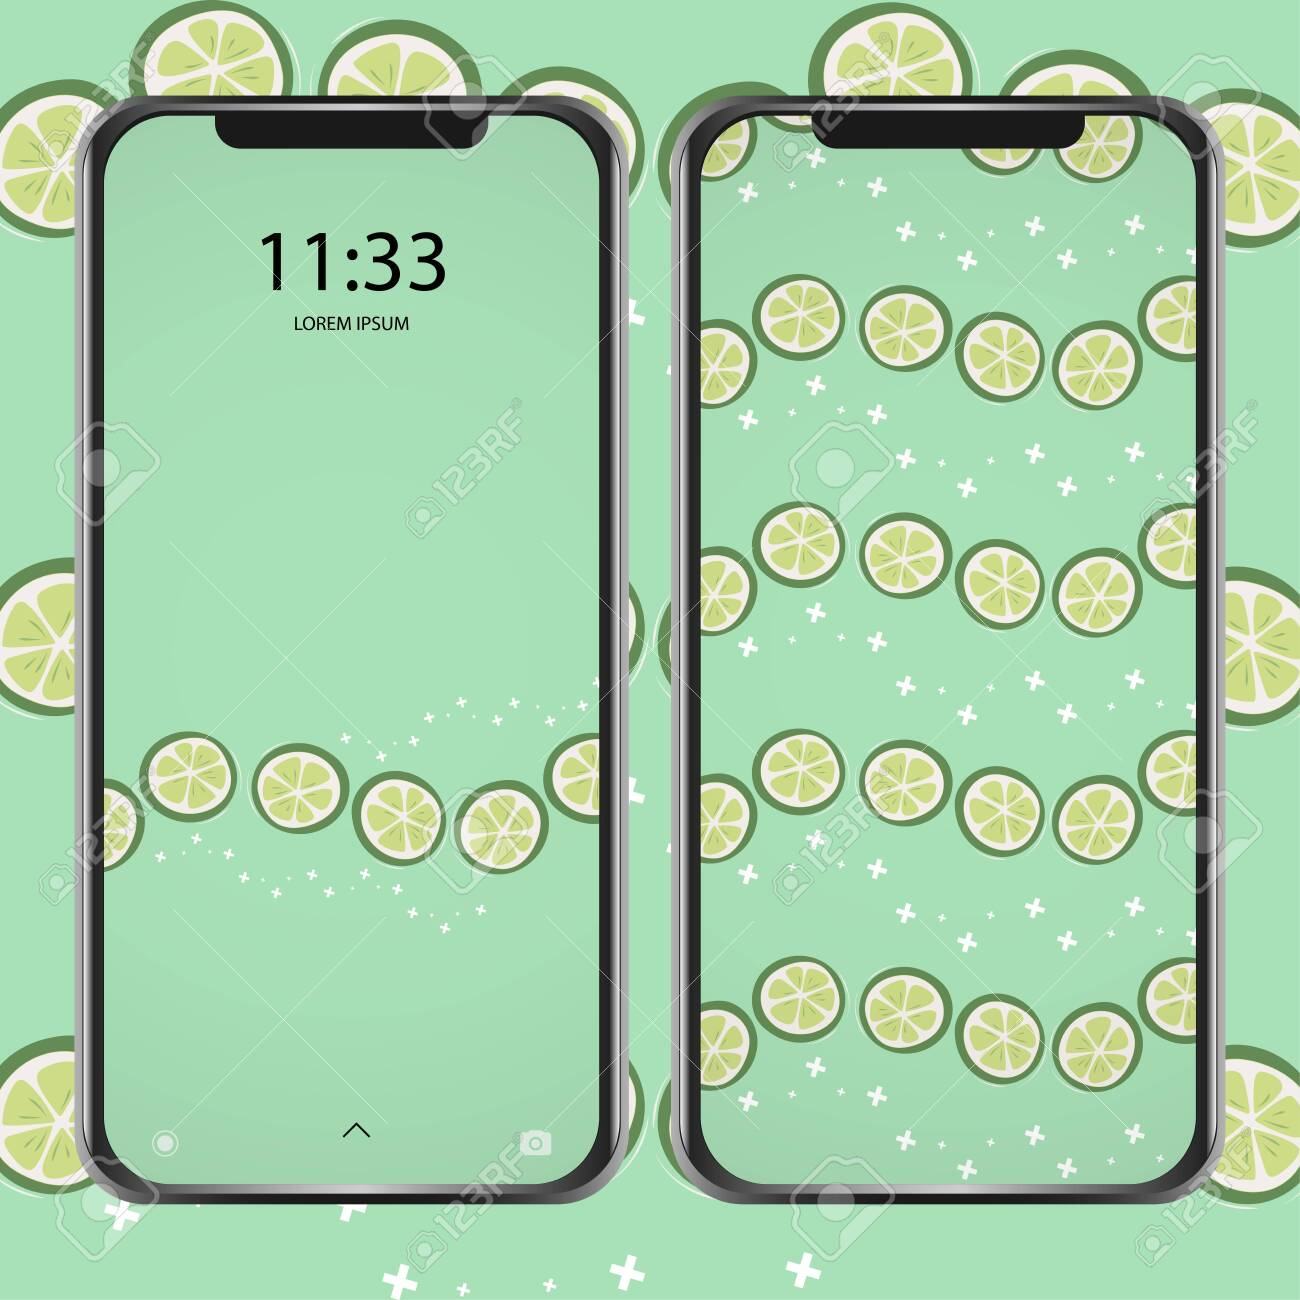 photo stock vector cool collection of mobile phone wallpaper with lemon fruit for printing on textiles pattern products